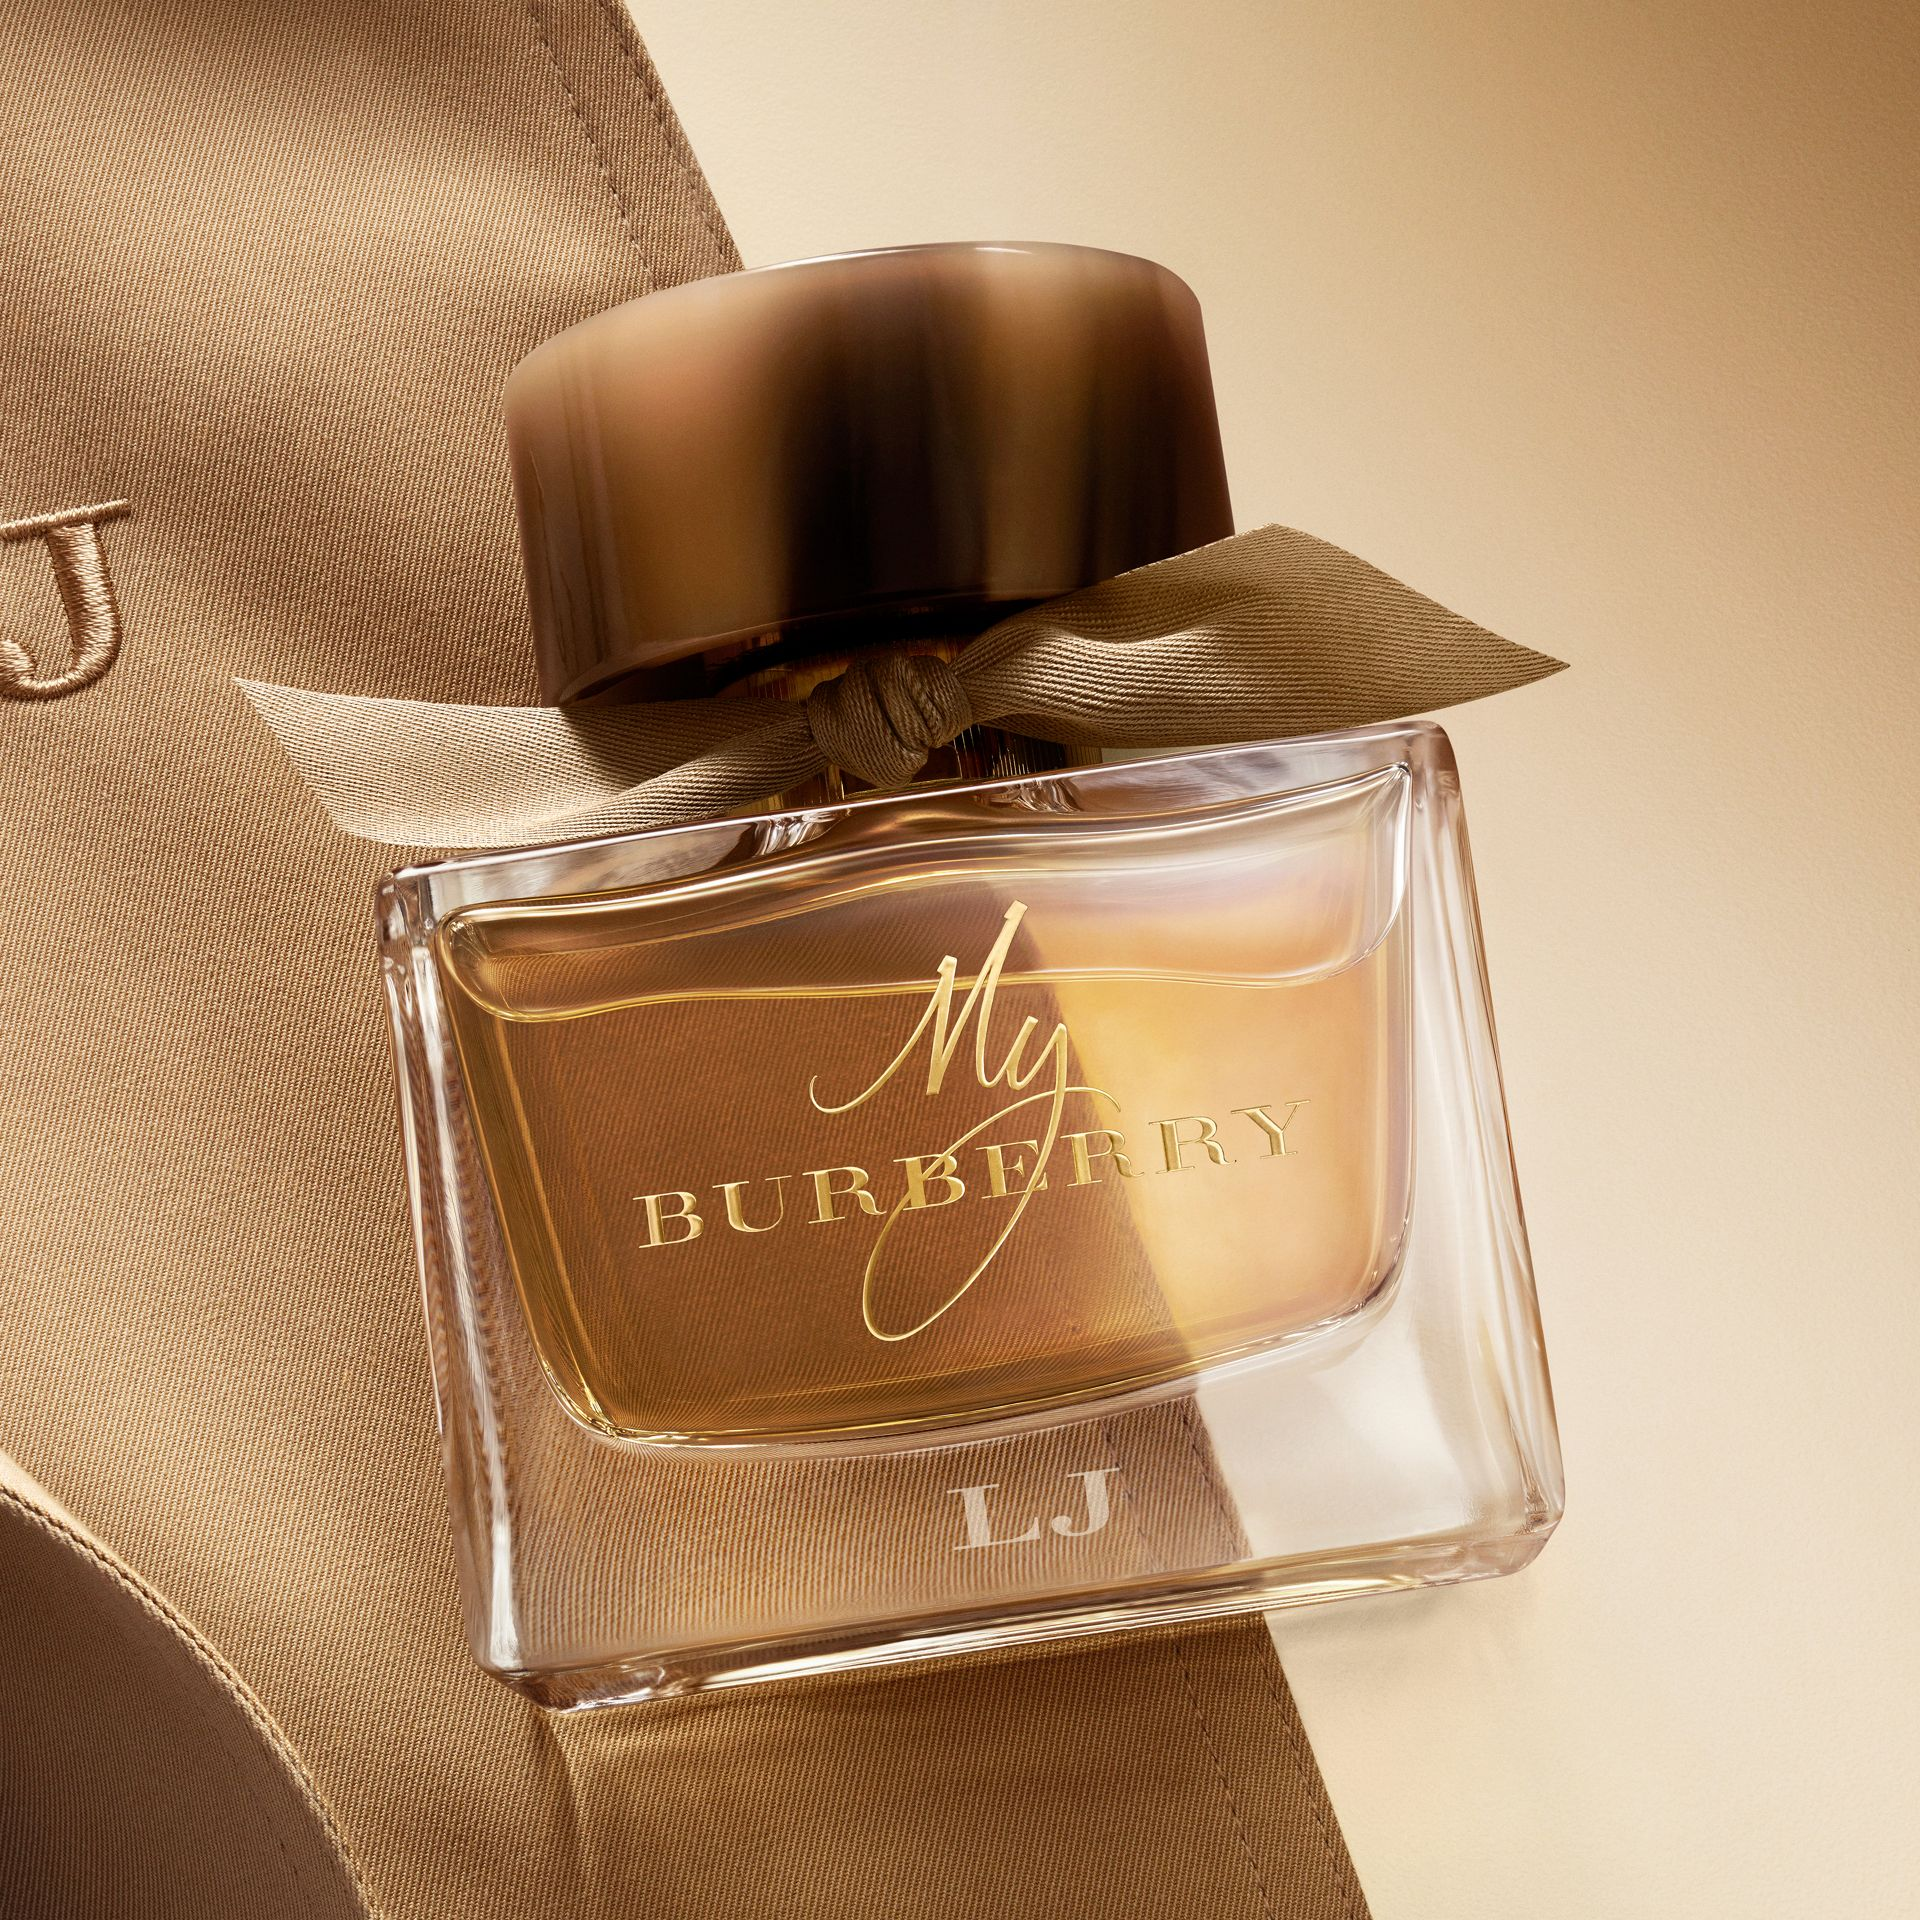 My Burberry Eau de Parfum 30ml - gallery image 4